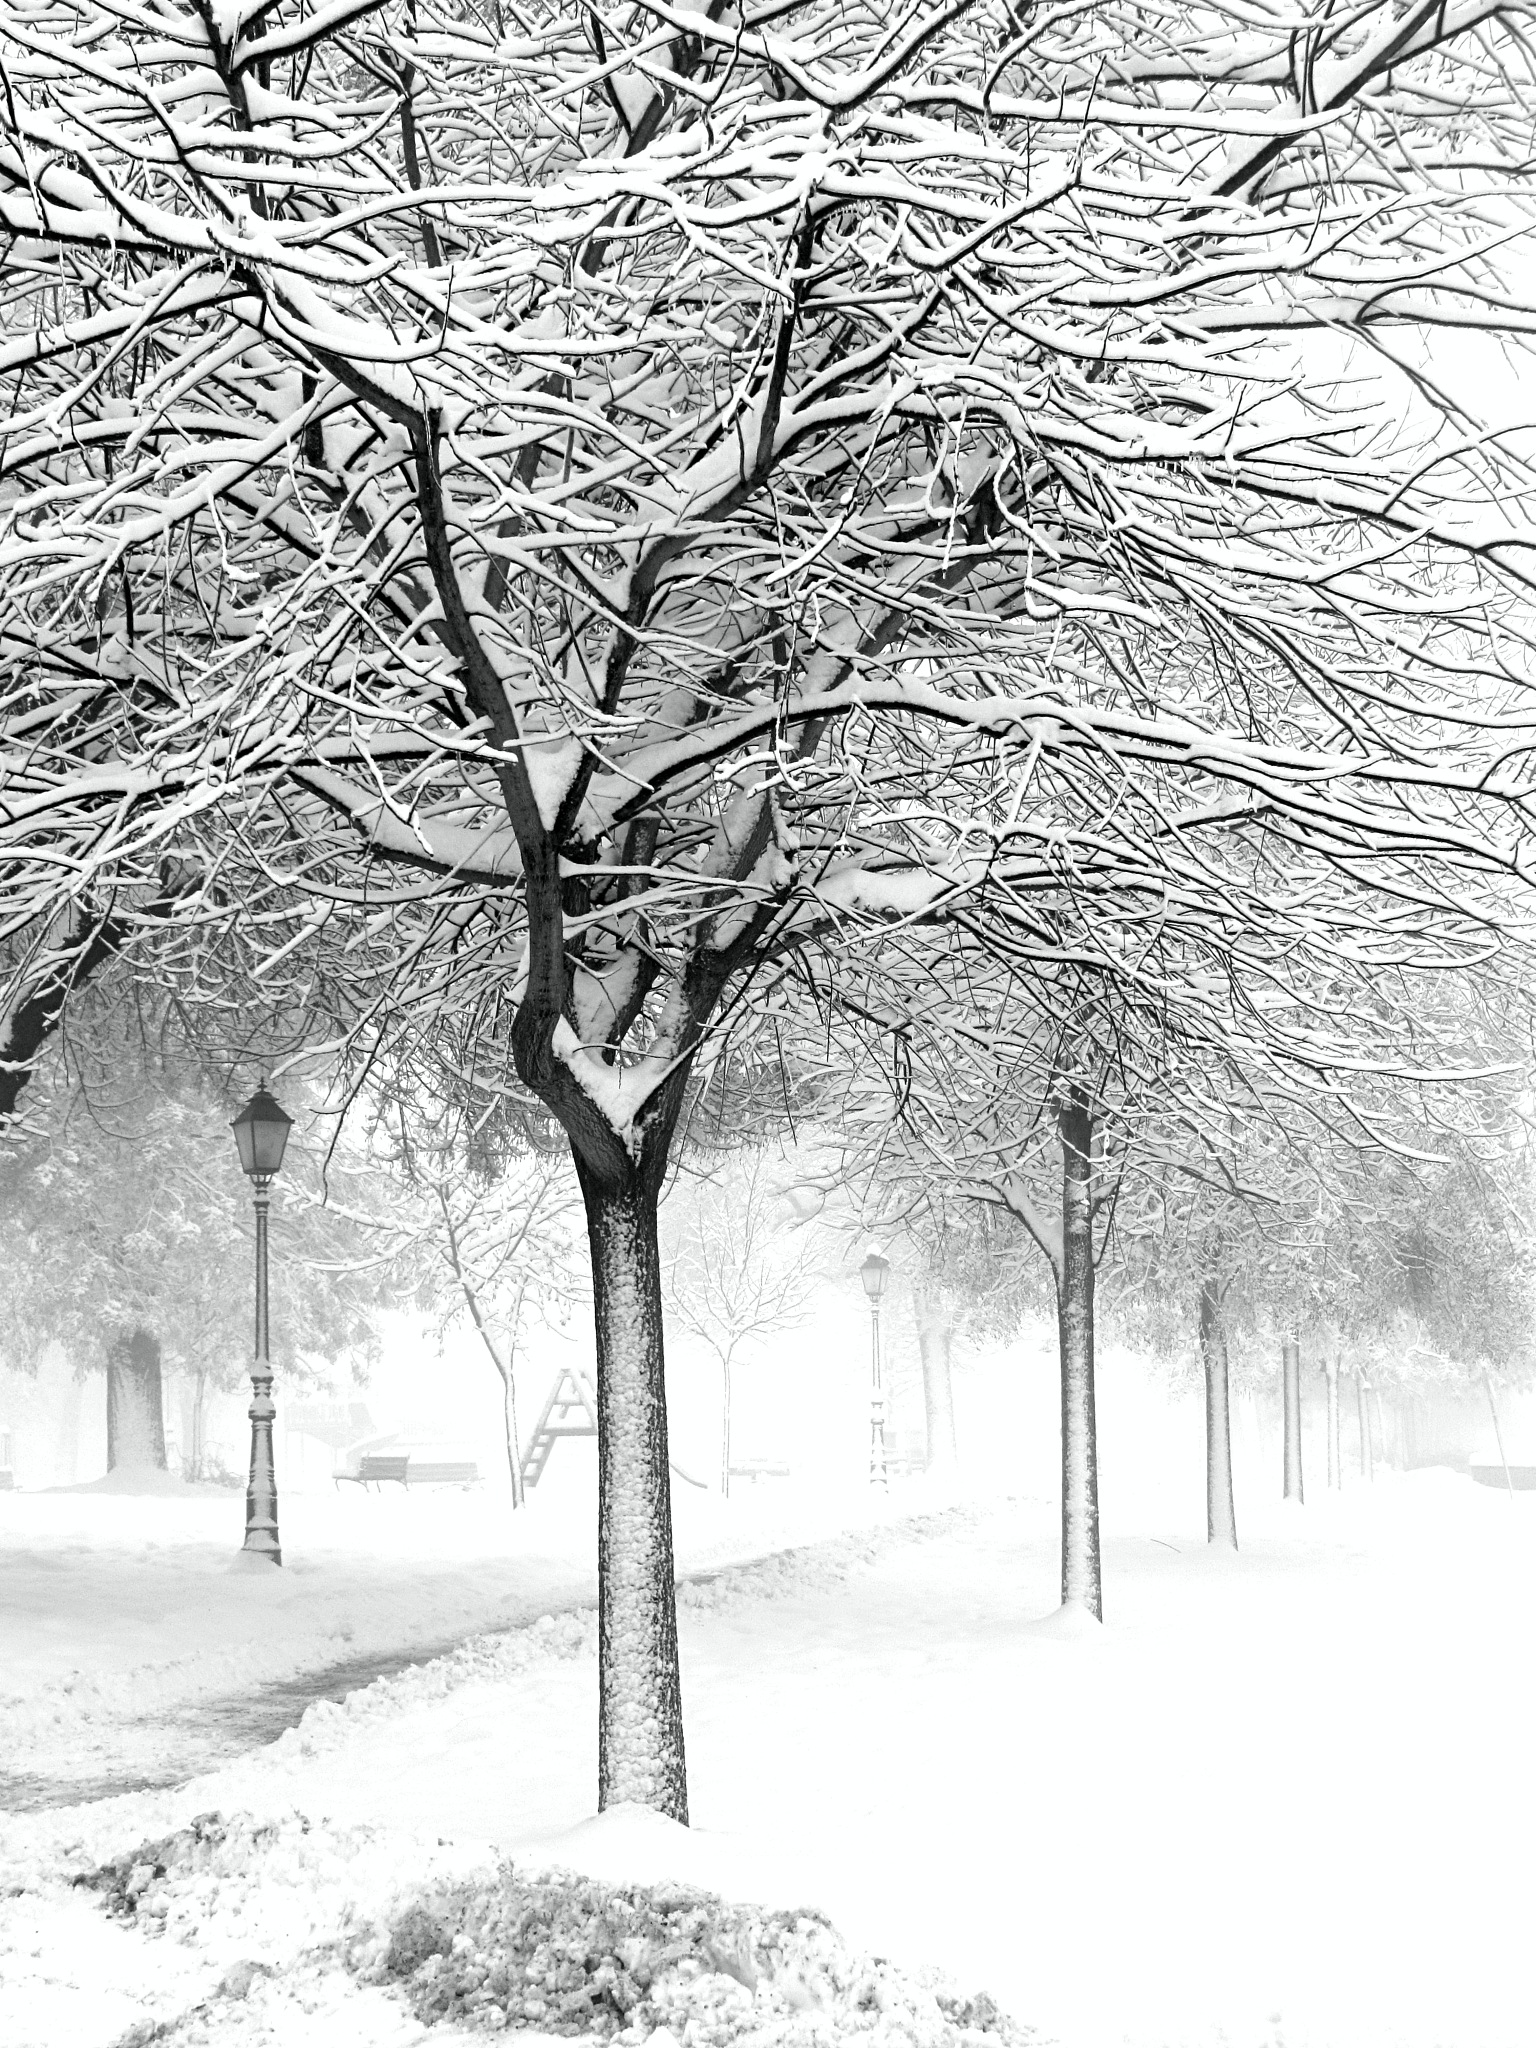 Lost in white by Javorka